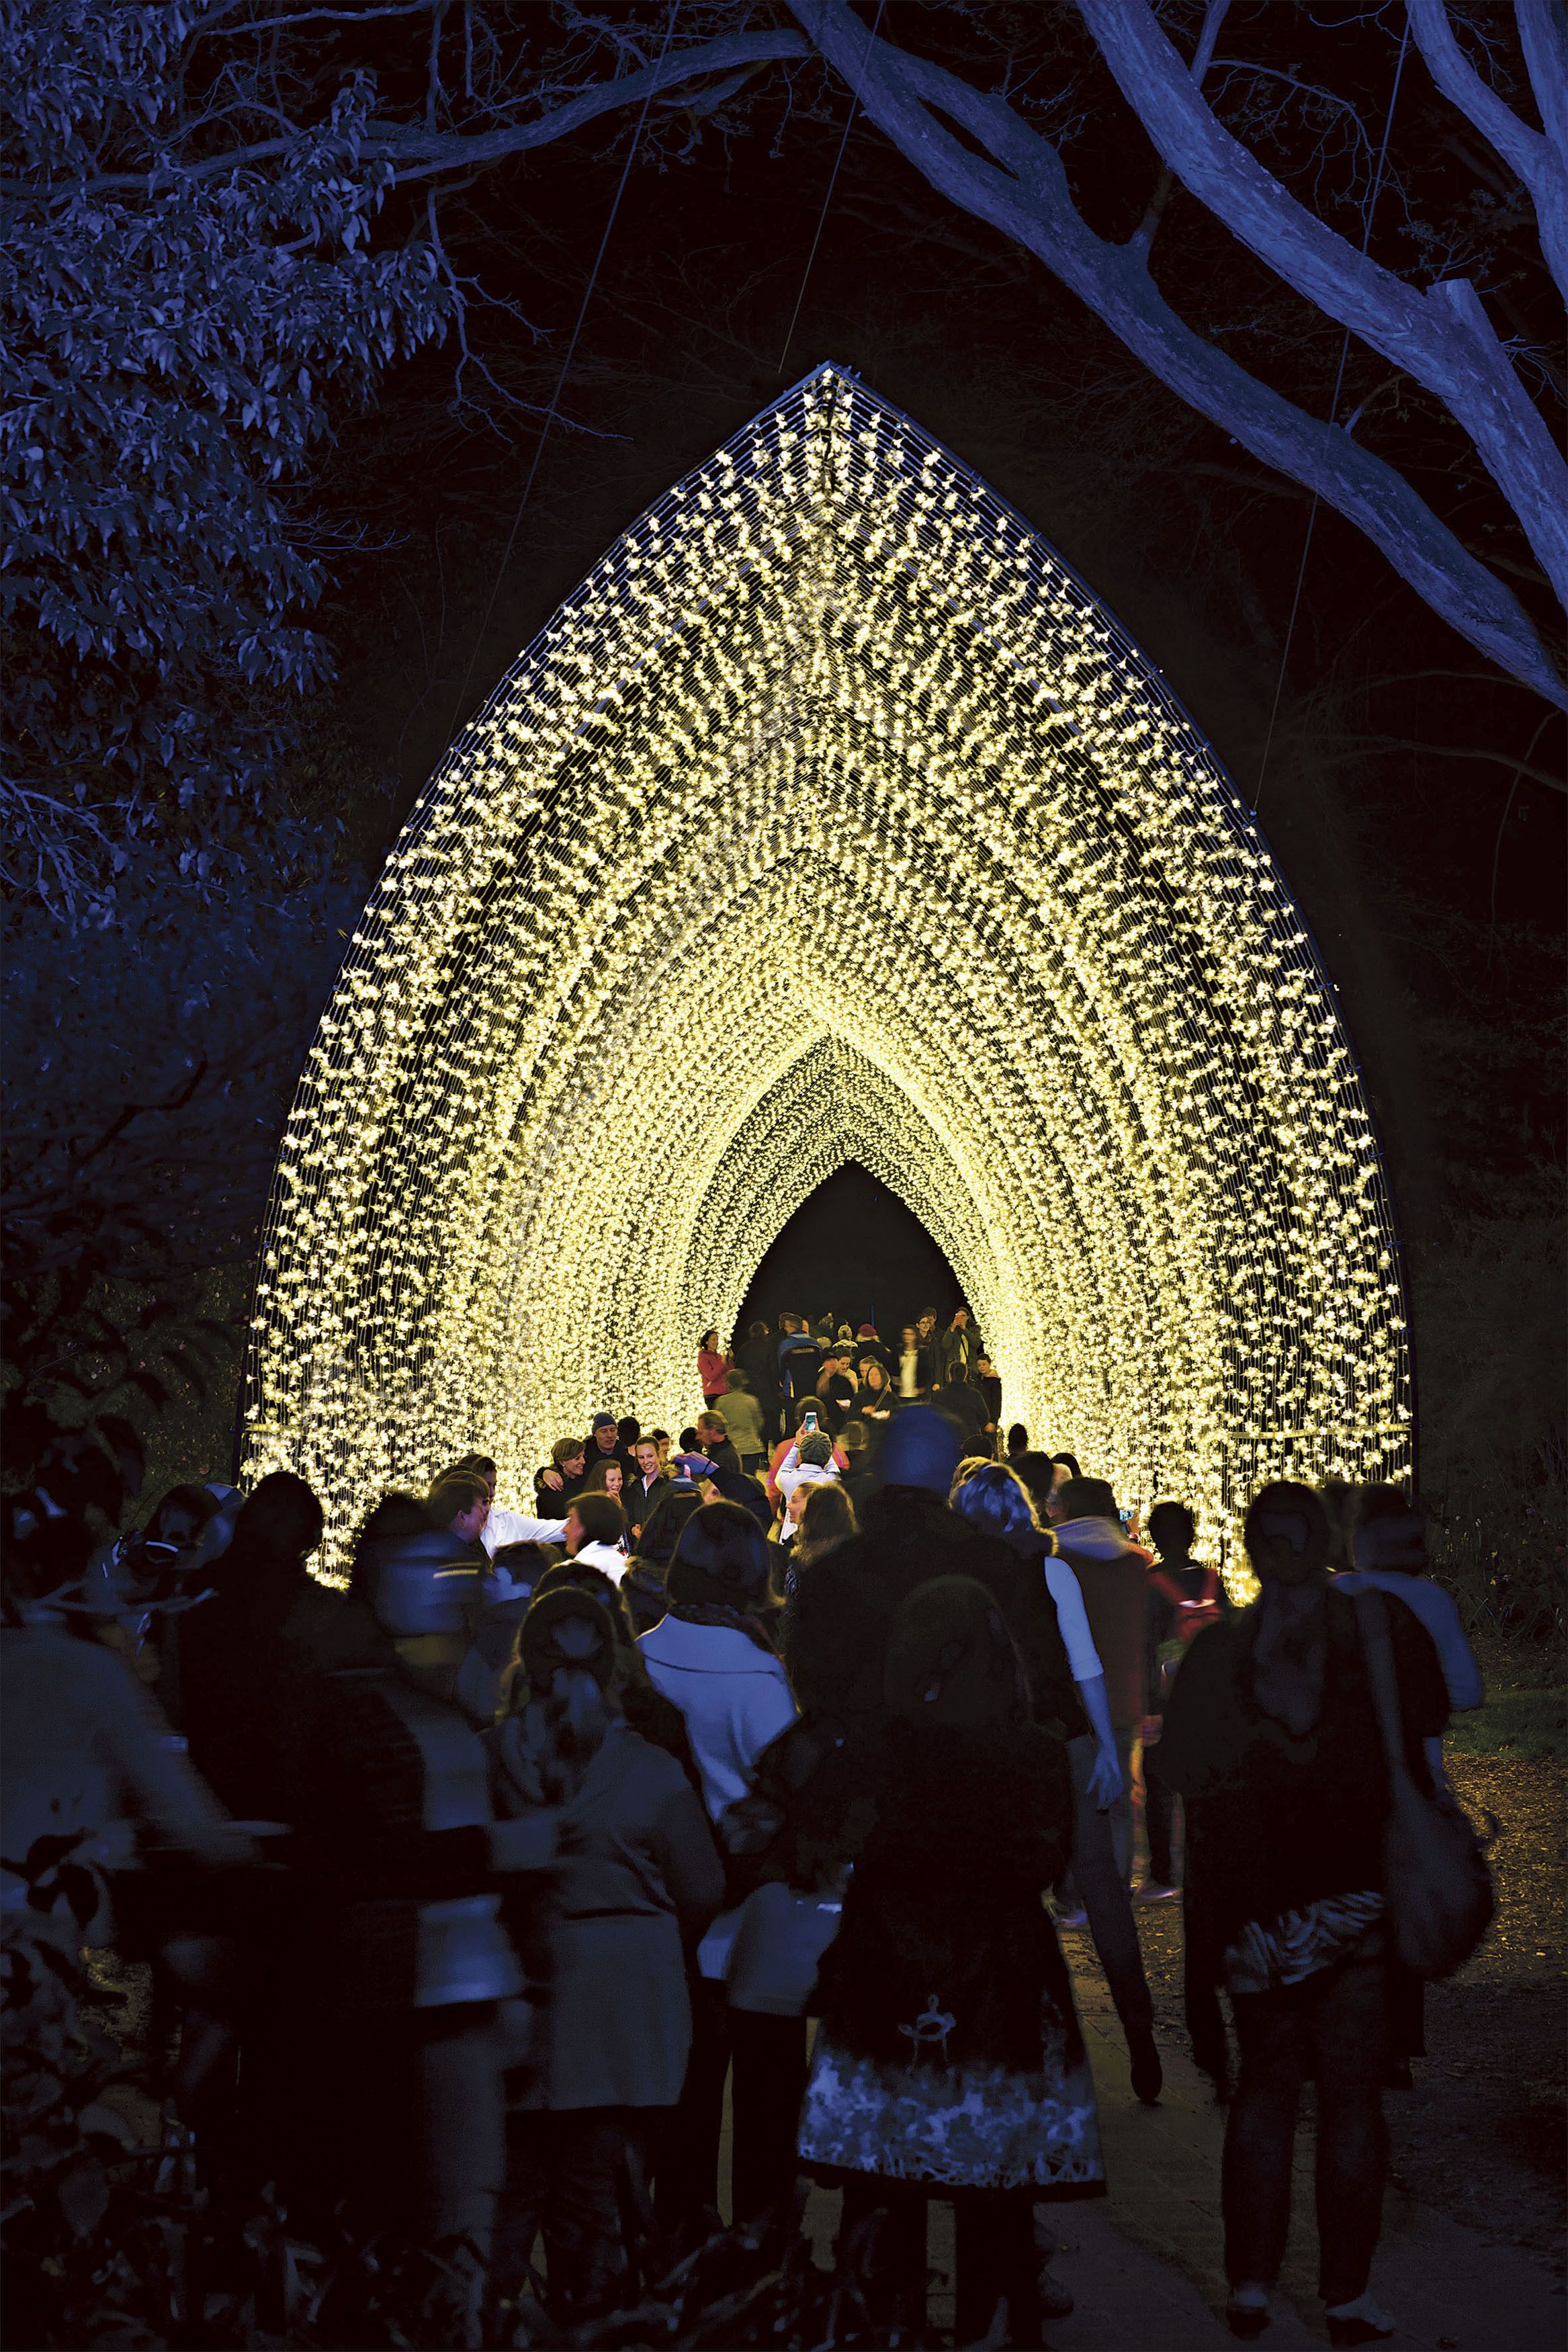 vivid-sydney-cathedral-of-light-royal-botanic-gard11